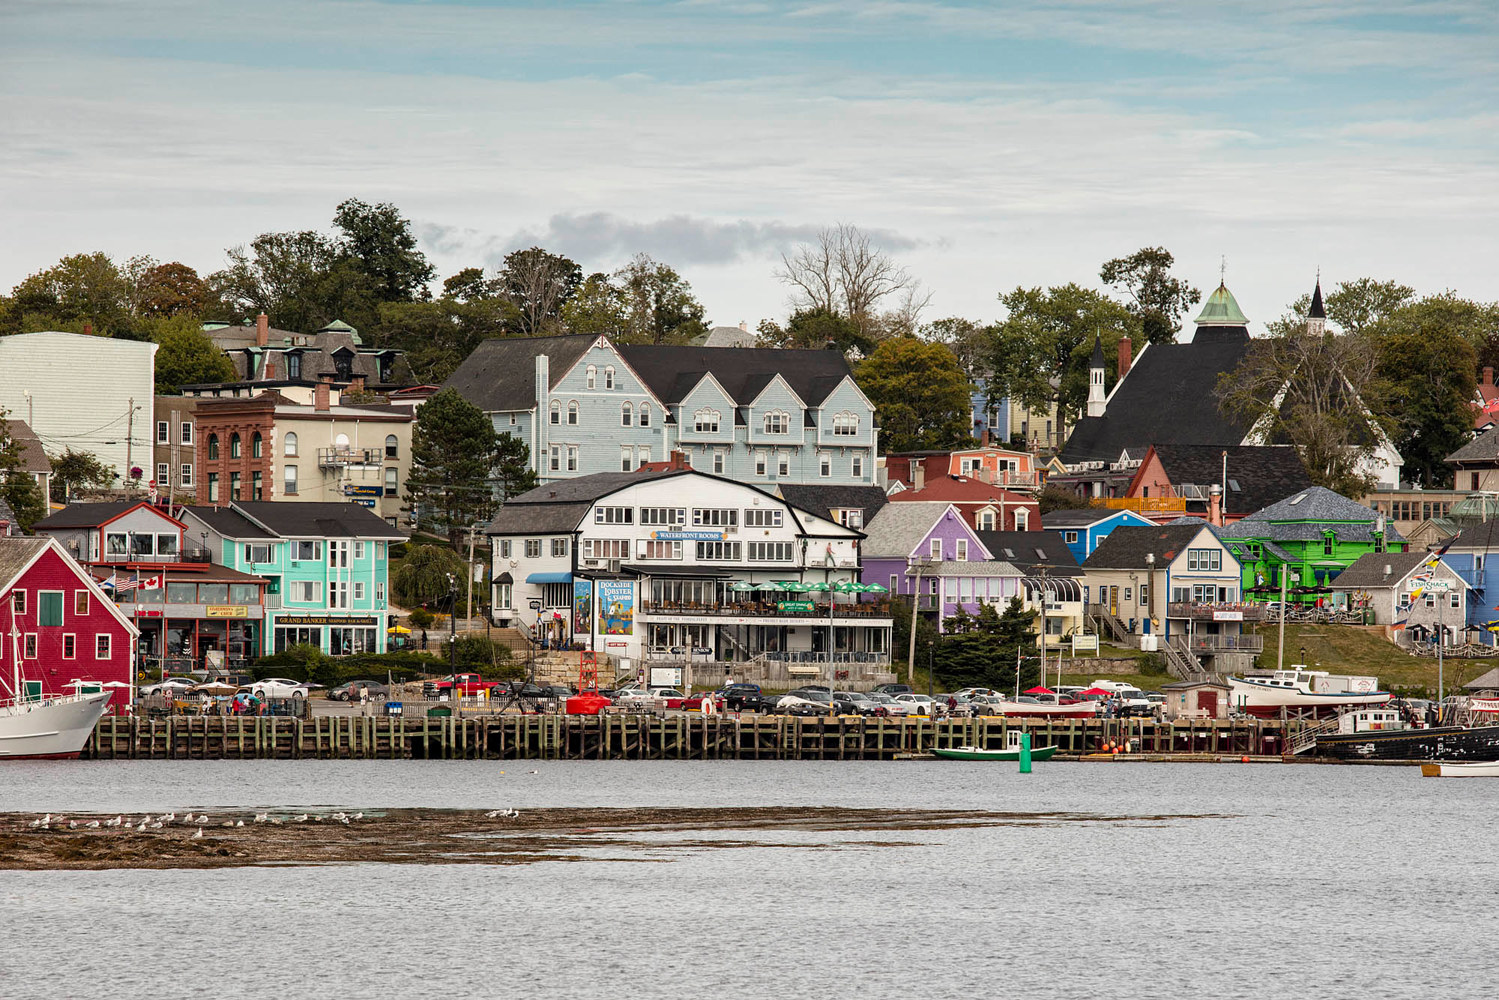 Lunenburg Old Town by William Kent